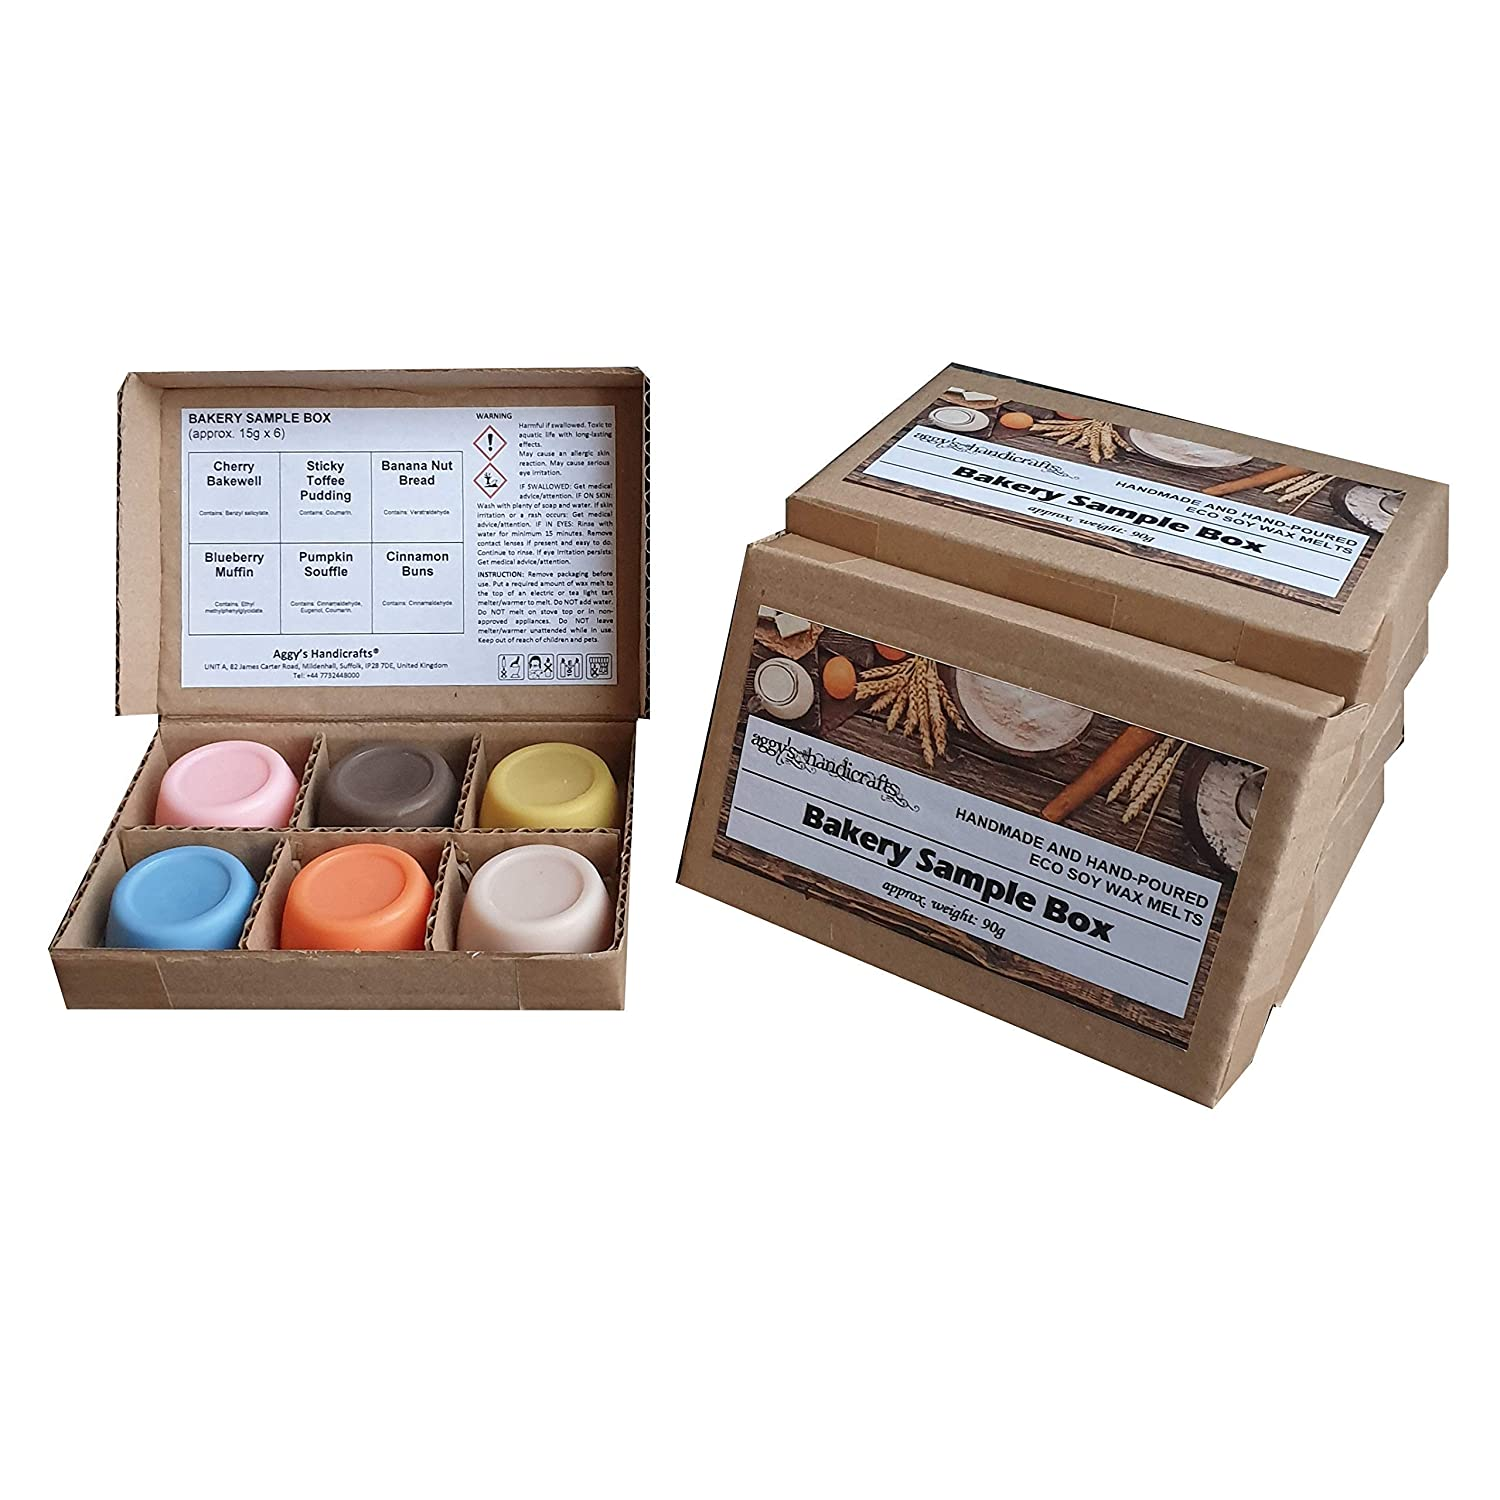 BAKERY Sample Box of Highly Scented Soy Wax Melts approx. 90g